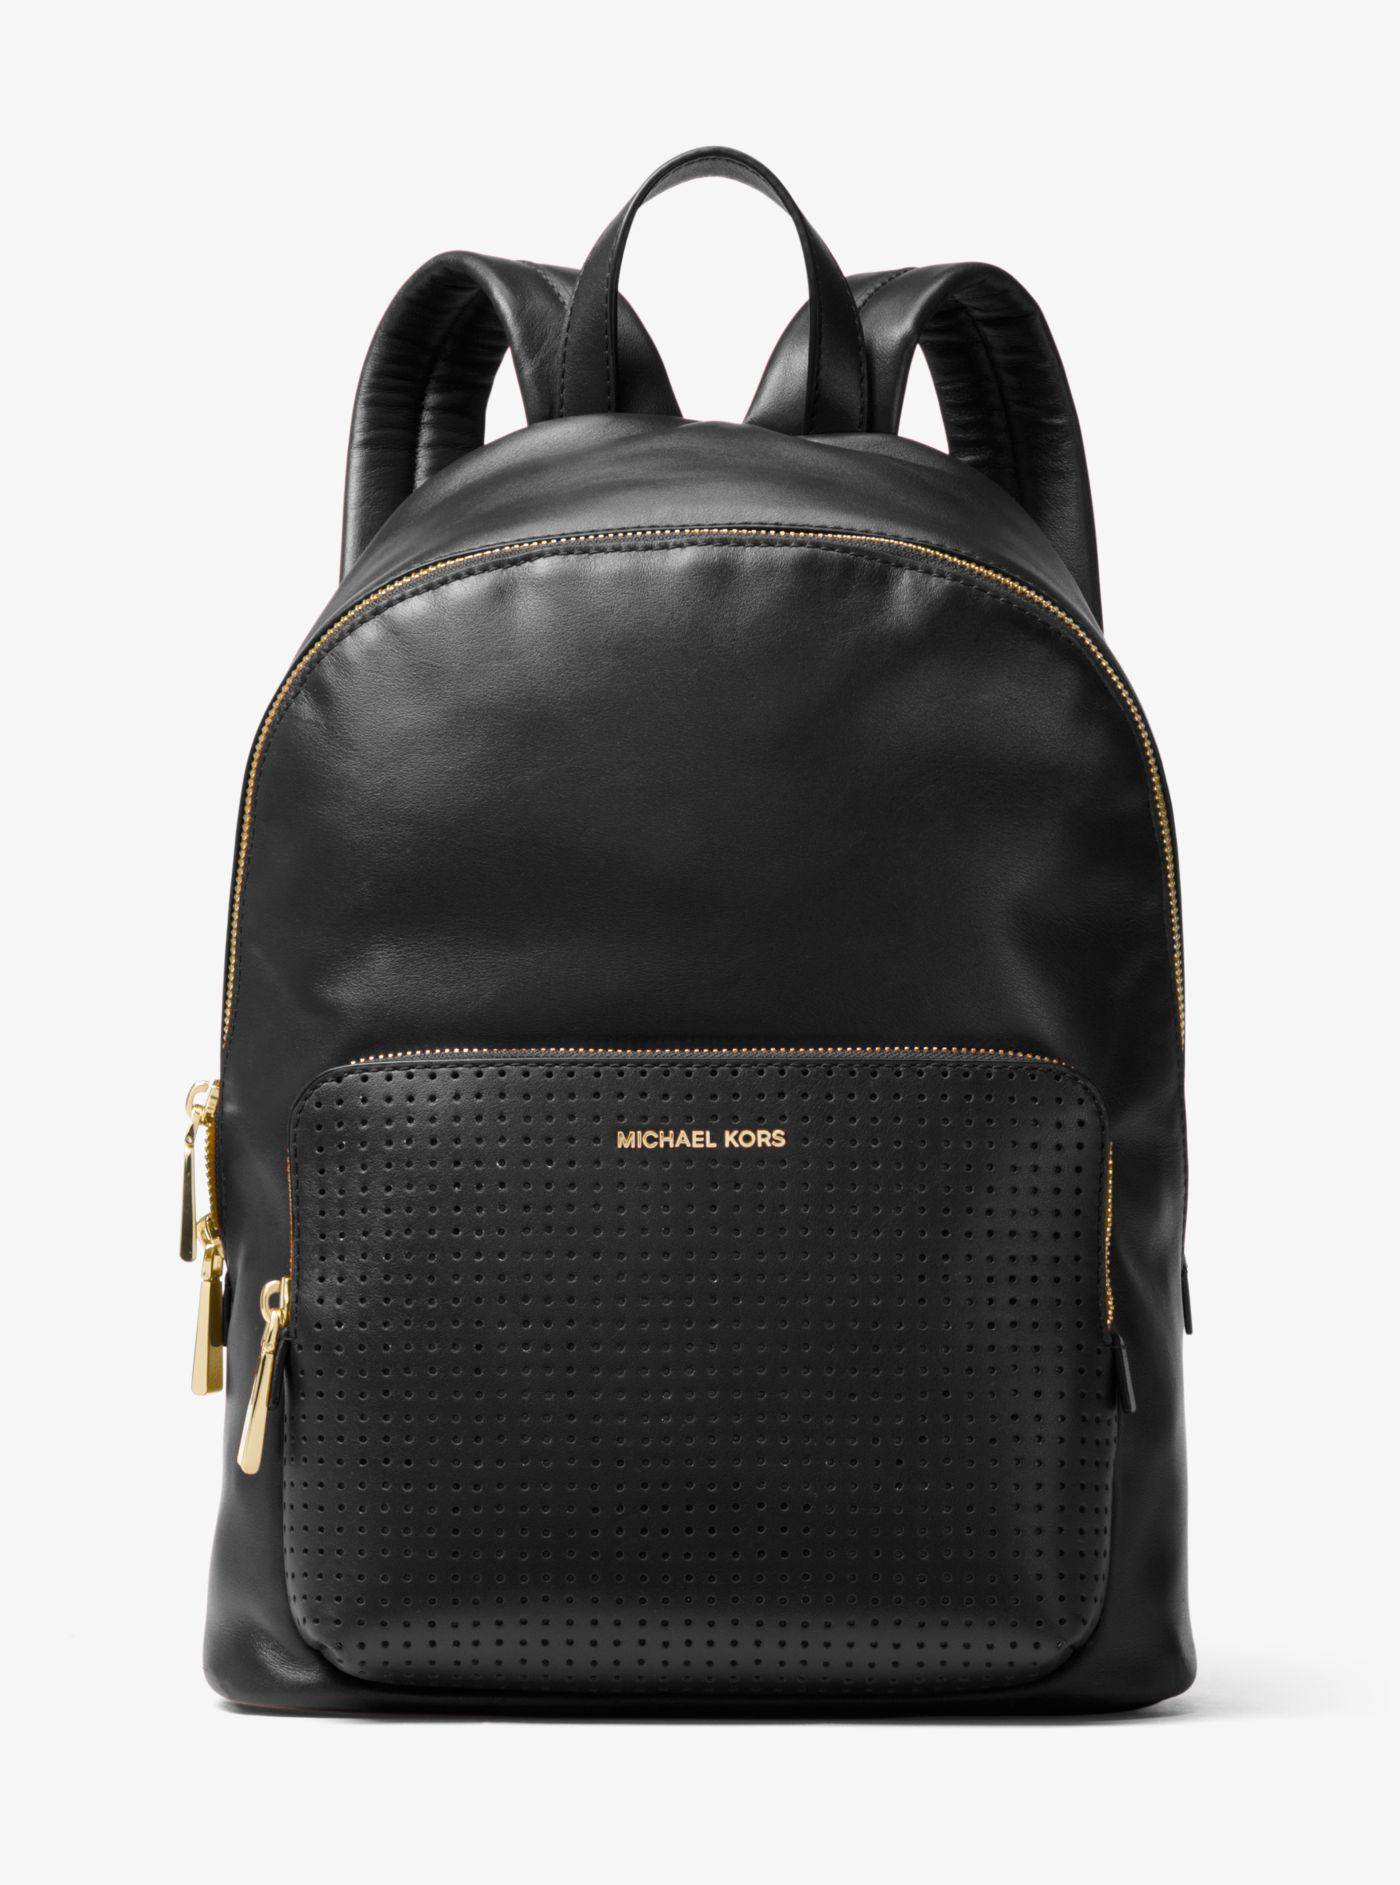 ed93d38c452f2 Lyst - Michael Kors Wythe Large Perforated Leather Backpack in Black